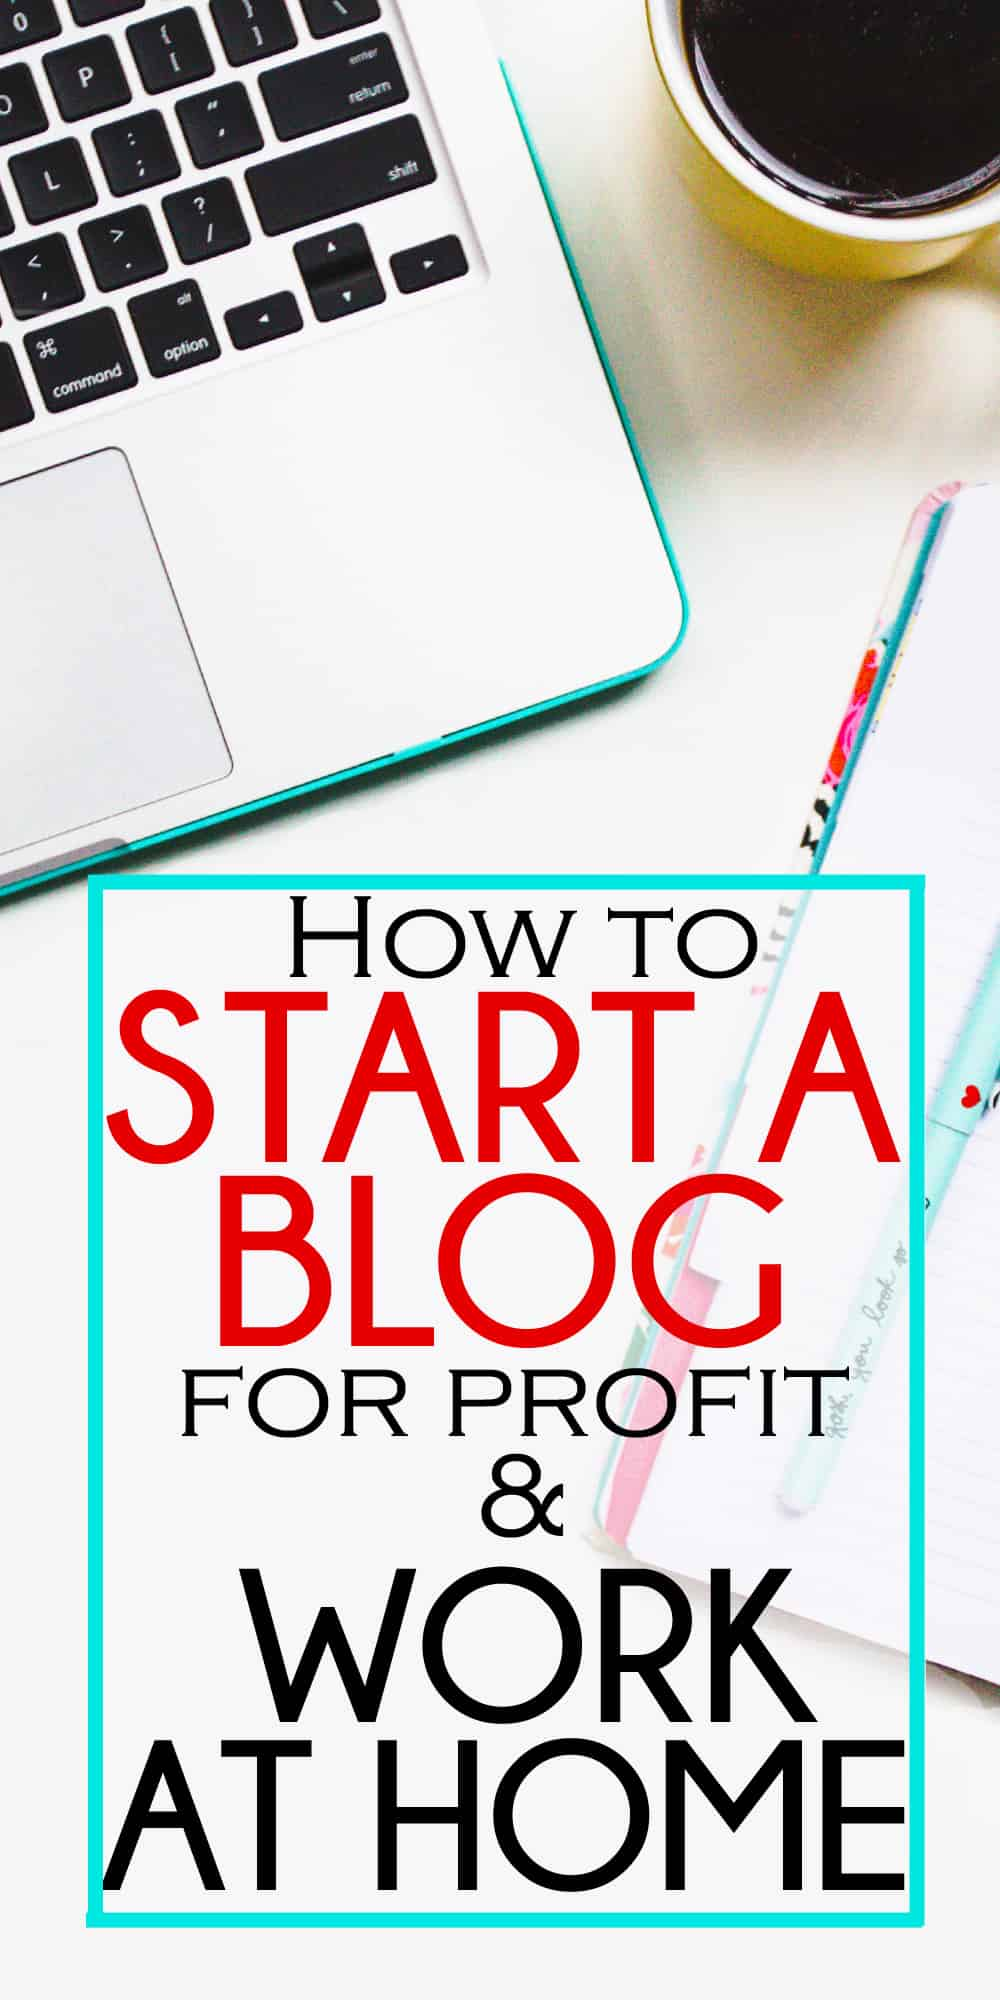 How to start a blog - step by step tutorial!